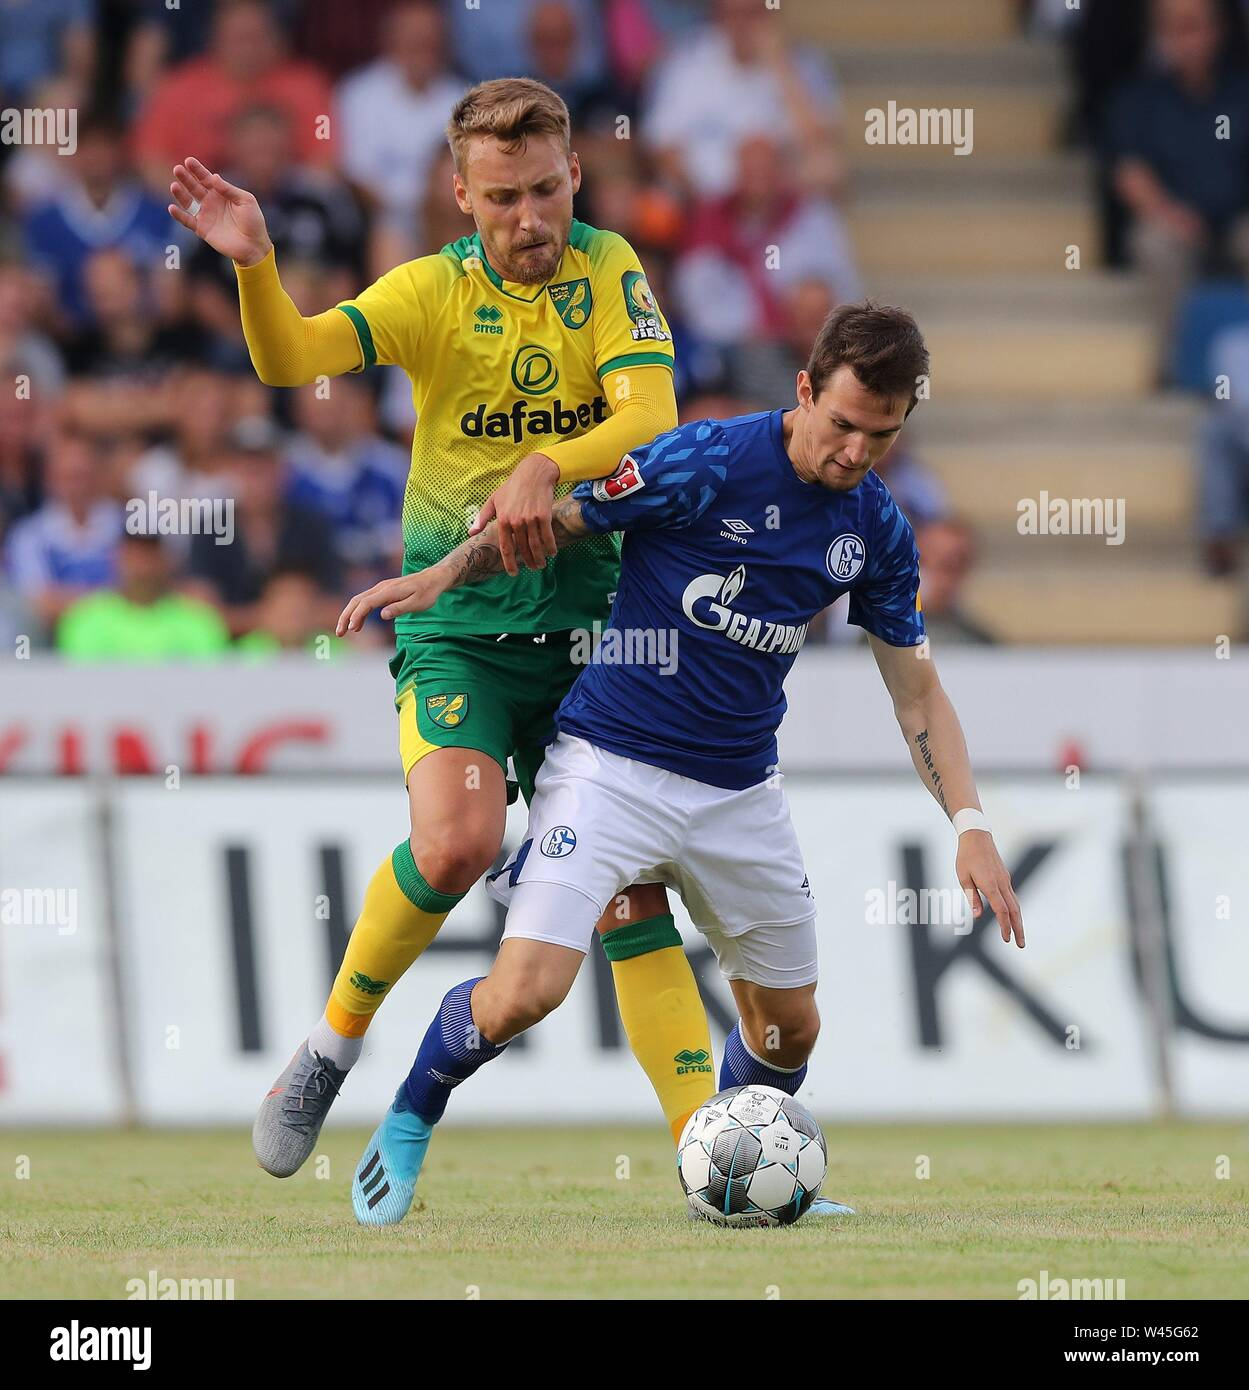 Lotte, Deutschland. 19th July, 2019. firo: 19.07.2019, football, 1.Bundesliga, season 2019/2020, friendly match, FC Schalke 04 - Norwich City Benito RAMAN, Schalke, right duels | usage worldwide Credit: dpa/Alamy Live News - Stock Image